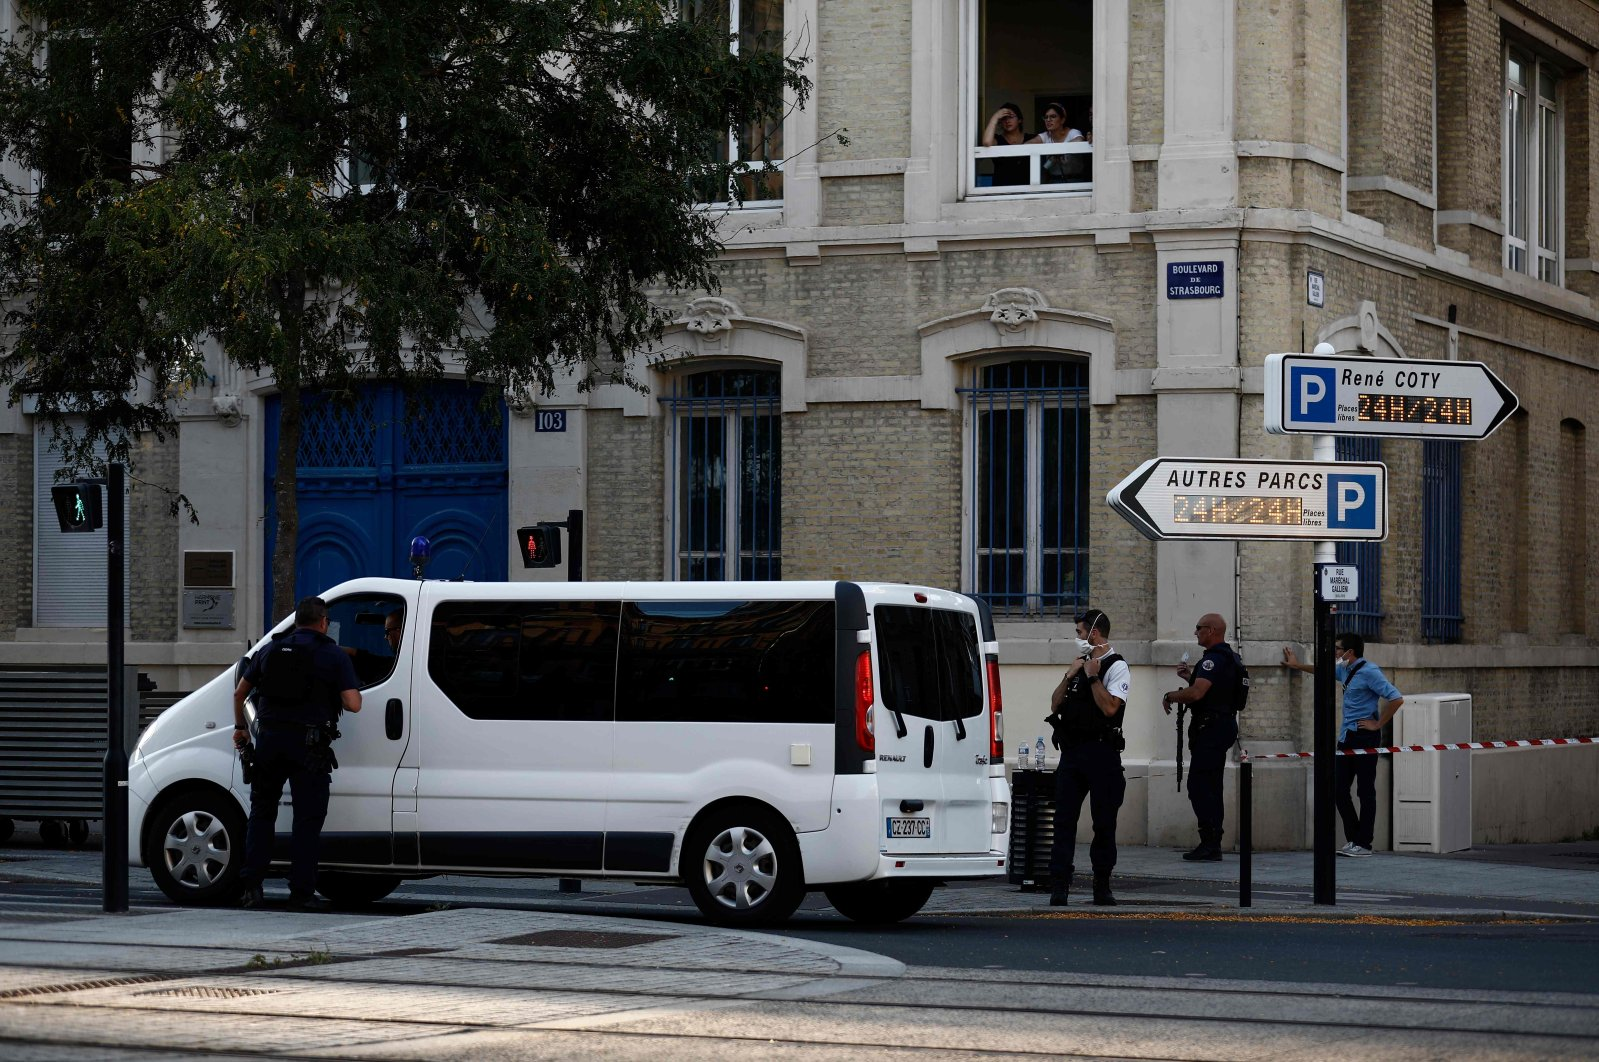 French police have cordoned off an area around a bank where an armed man allegedly holds five people as hostages according to police, in the port city of Le Havre, northwestern France, on August 6, 2020. (AFP Photo)